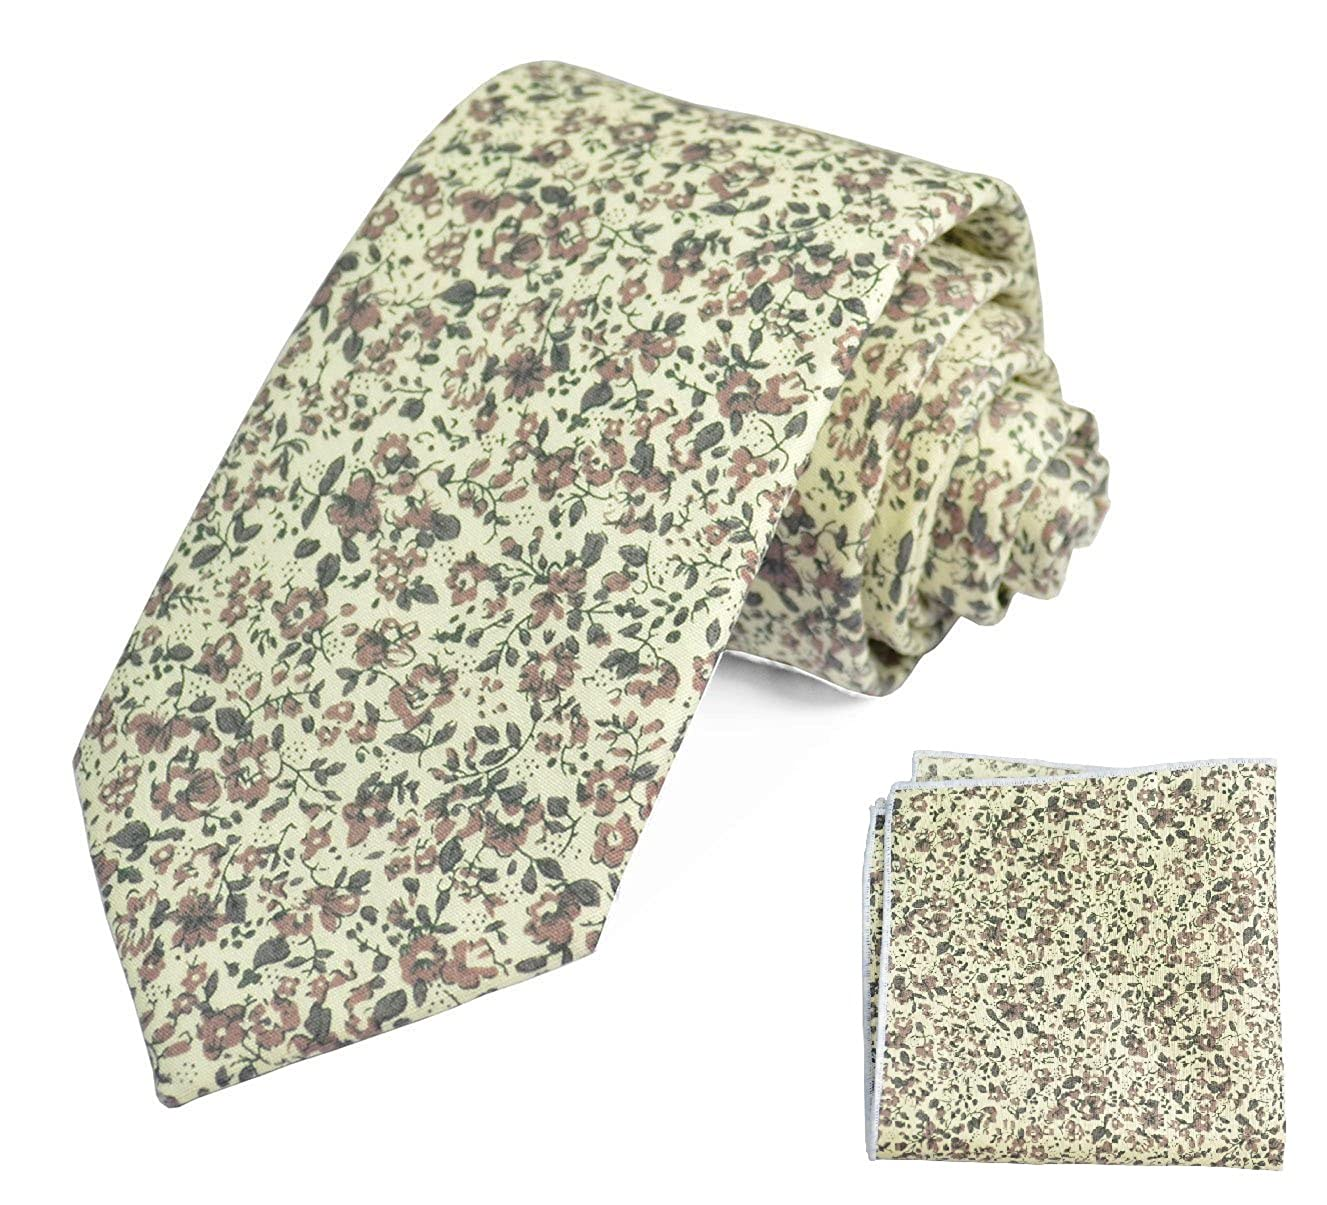 Wisteria Flowered 100/% Cotton Tie and Pocket Square Set by Paul Malone